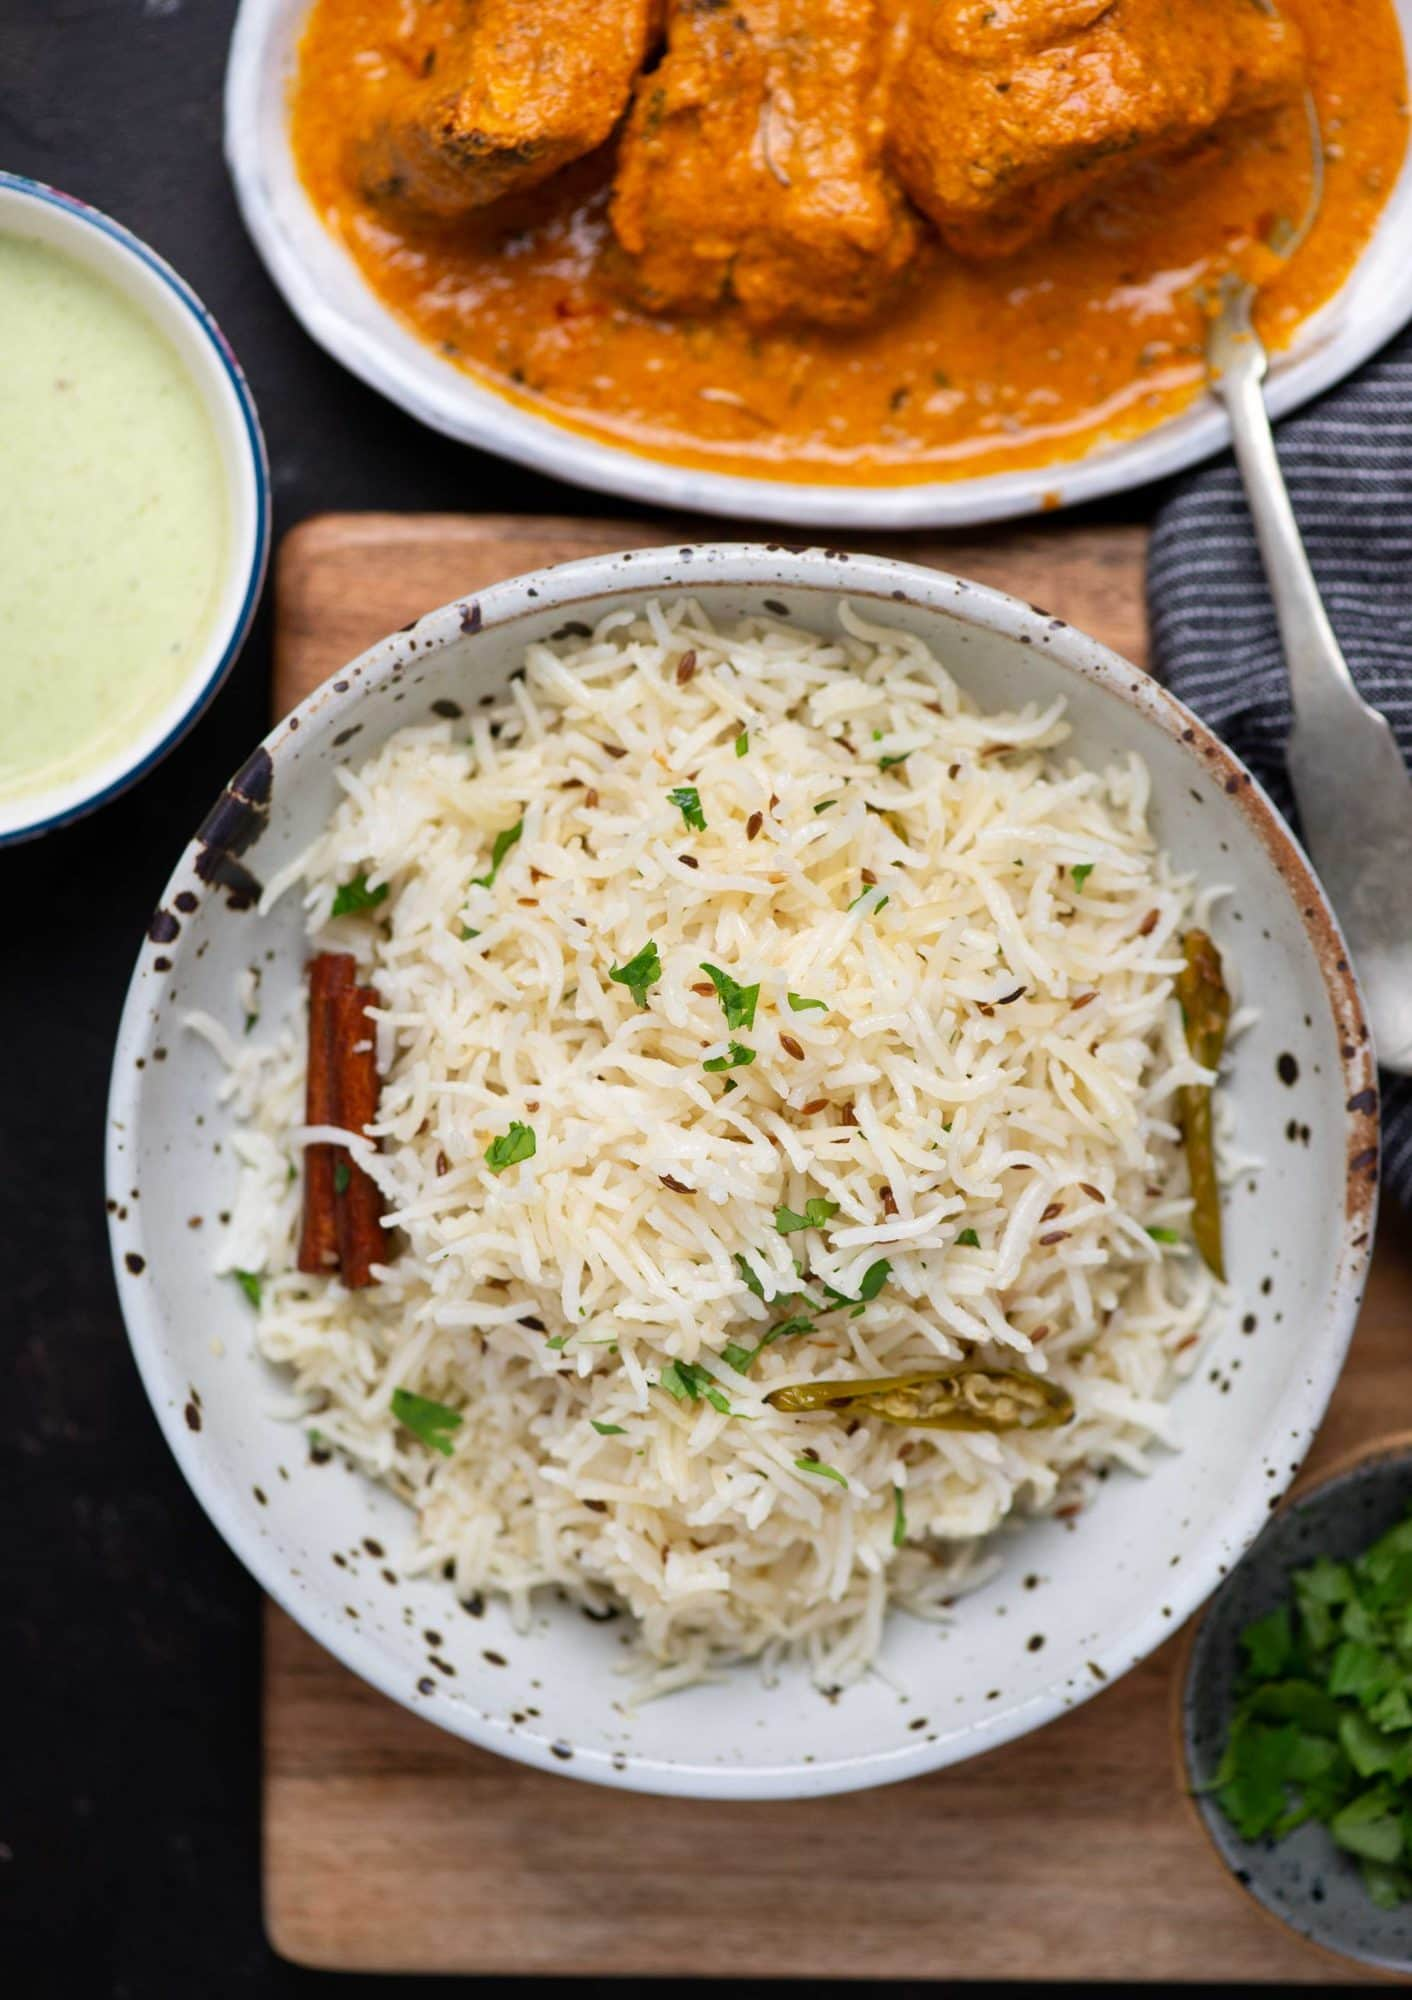 picture of Jeera rice served on a plate with gravy and a mint chutney served along with it